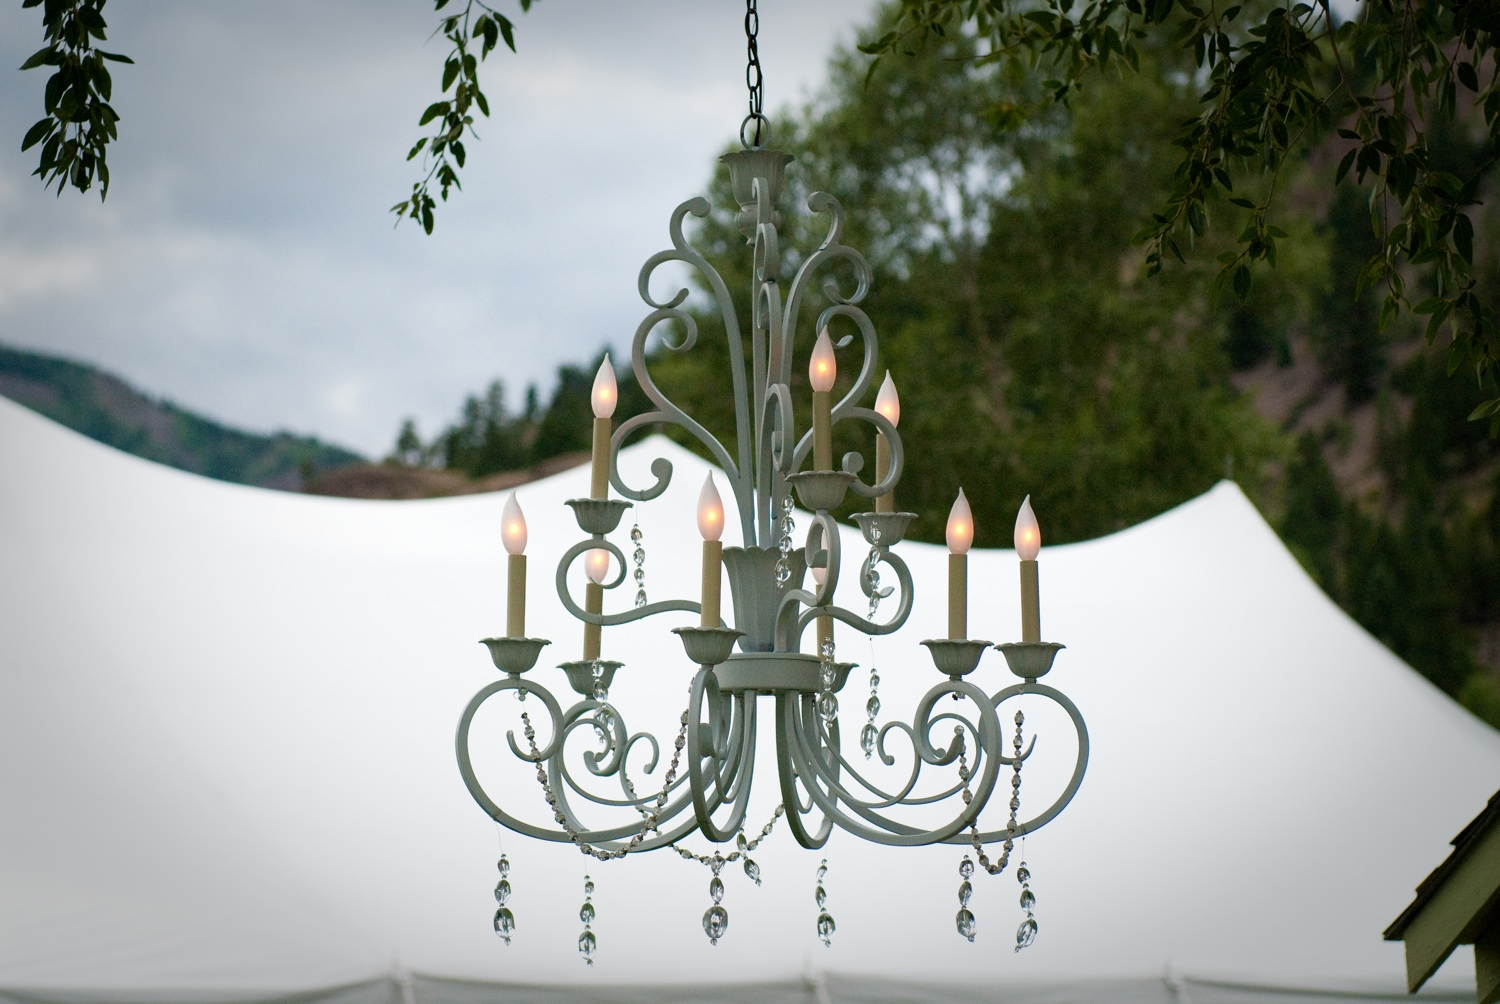 Outdoor-wedding-venue-decor-rentals.original